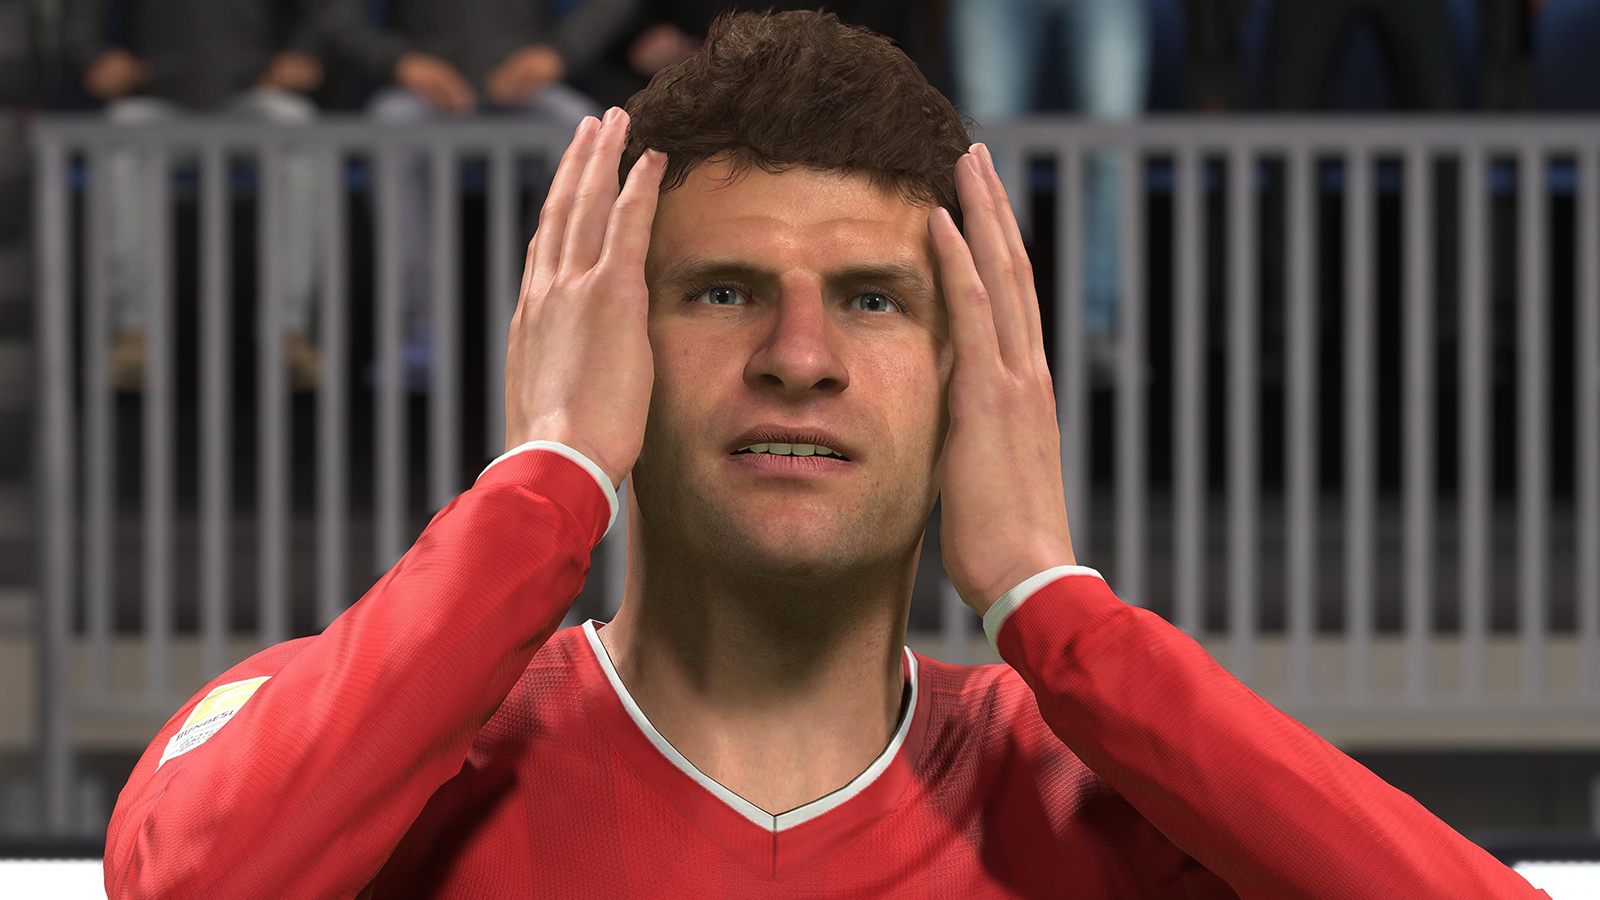 Thomas Muller hands on head in FIFA 21 Ultimate Team after lawsuit scripting.